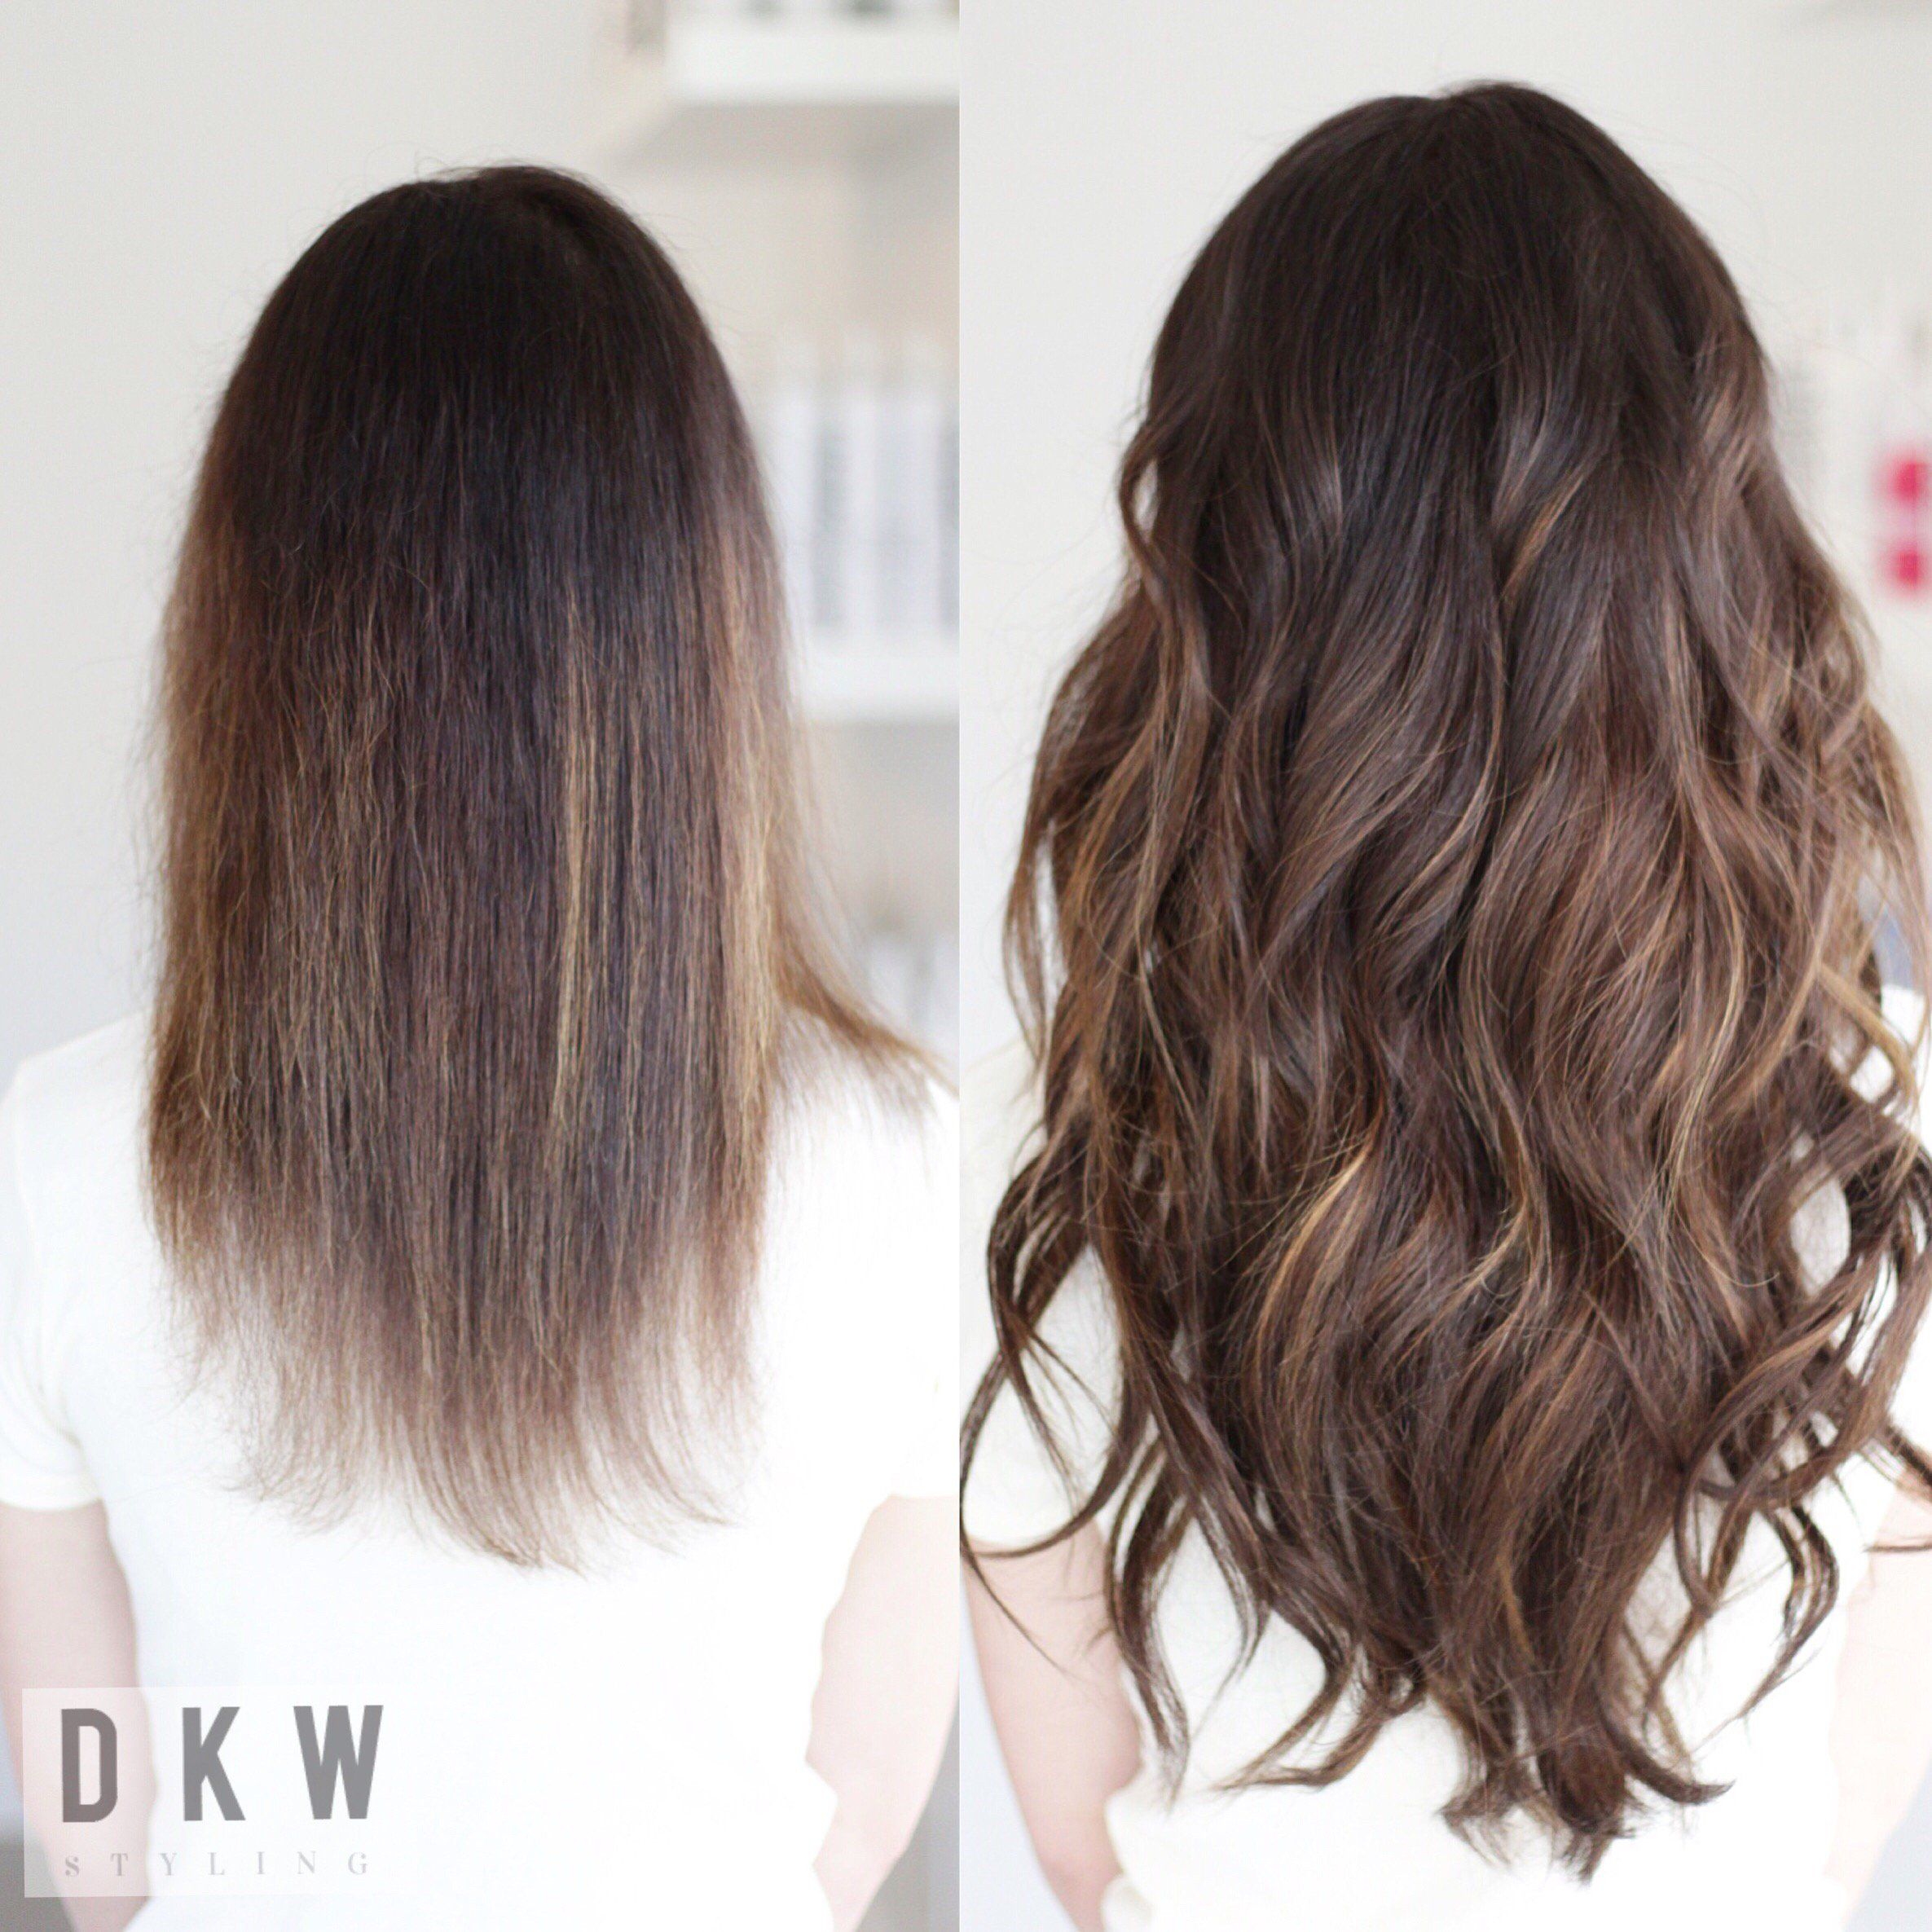 Learn The 1 Secret To Natural Looking Hair Extensions Natural